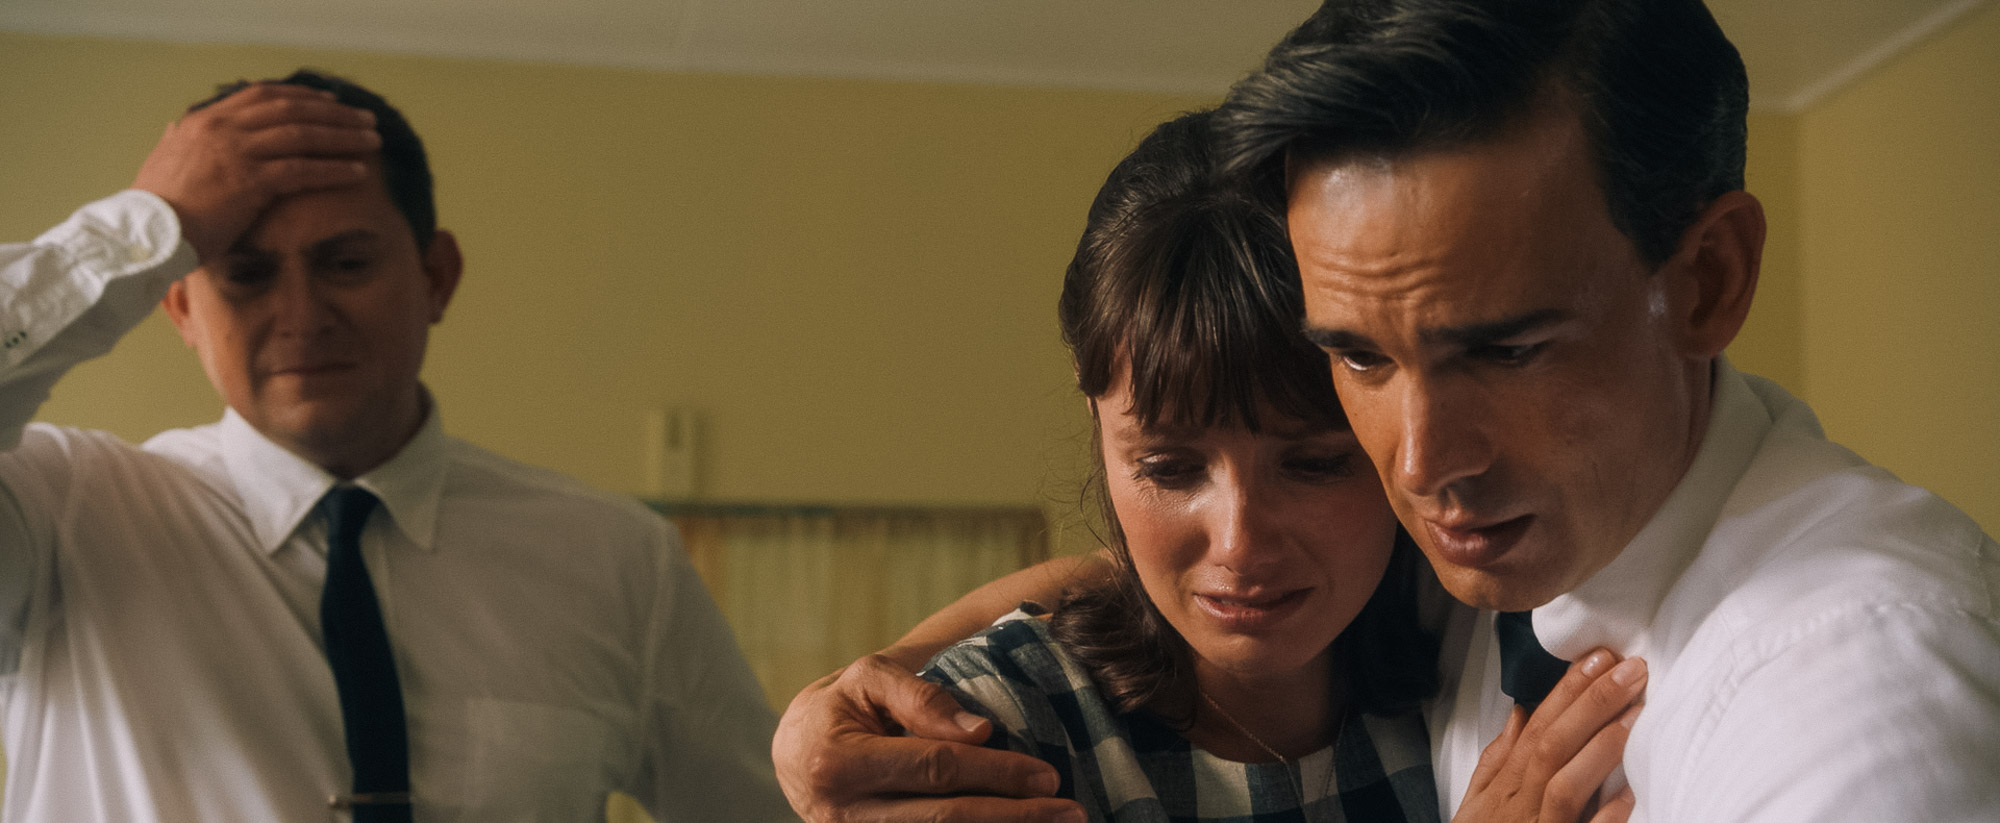 """Elder John H. Groberg (played by Christopher Gorham, right) and his wife, Jean (Natalie Medlock, center) worry for the health of their baby boy, in a scene from the movie """"The Other Side of Heaven 2: Fire of Faith."""" Russell Dixon, at left, portrays Thomas S. Monson, who would later become president and prophet of The Church of Jesus Christ of Latter-day Saints. (Photo courtesy Excel Entertainment.)"""